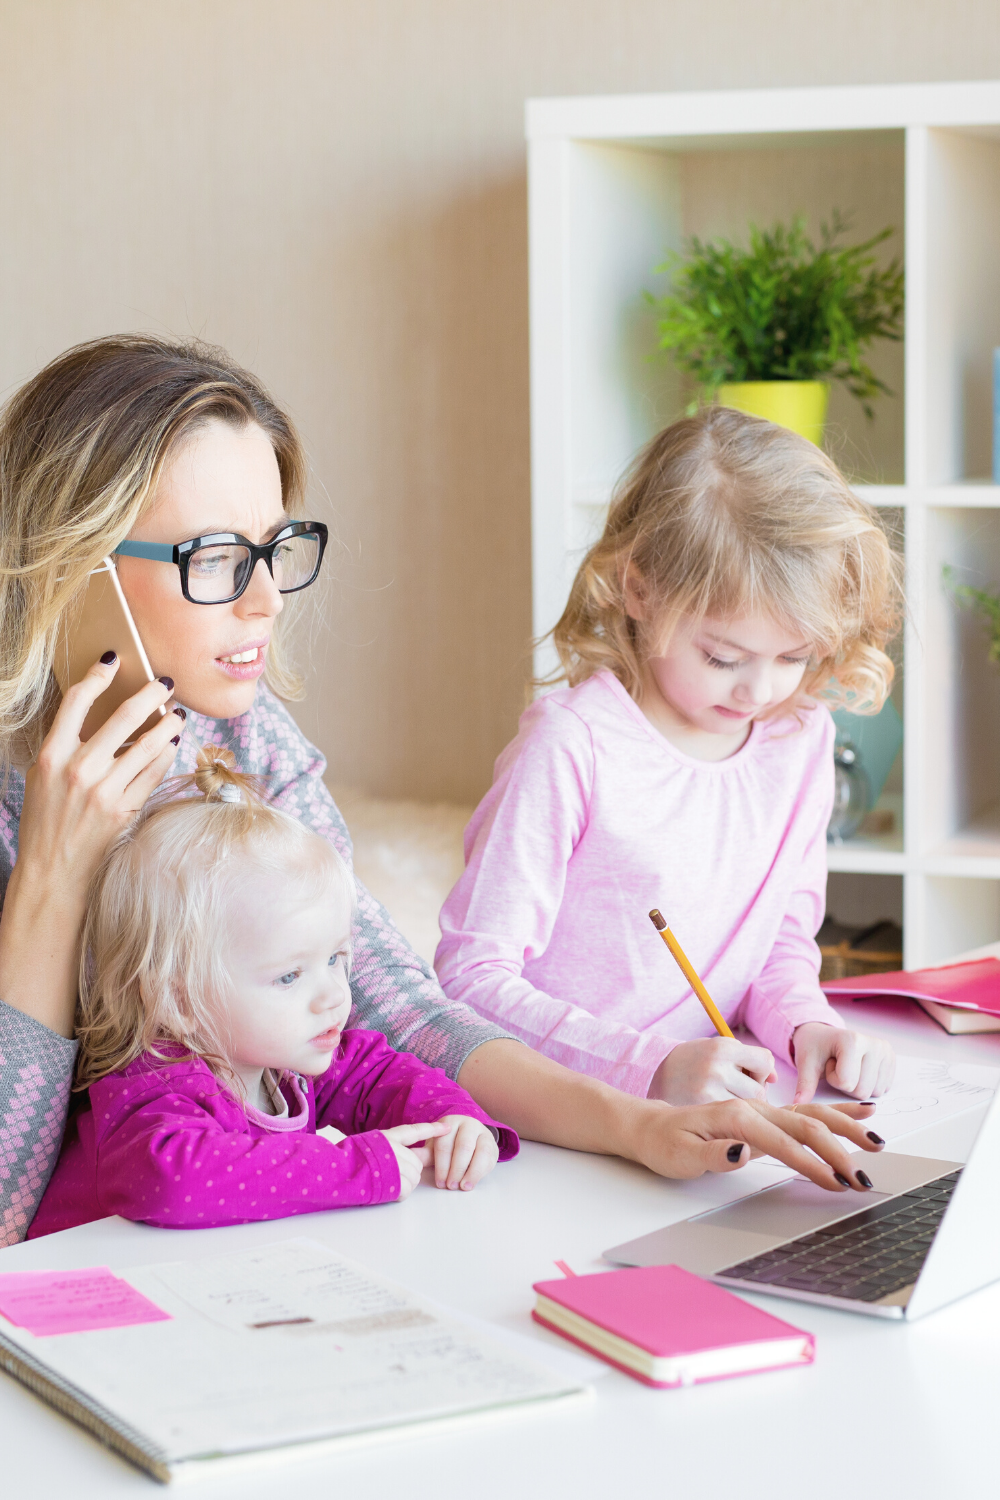 24 Best Ways to Make Money as a Stay-At-Home Mom